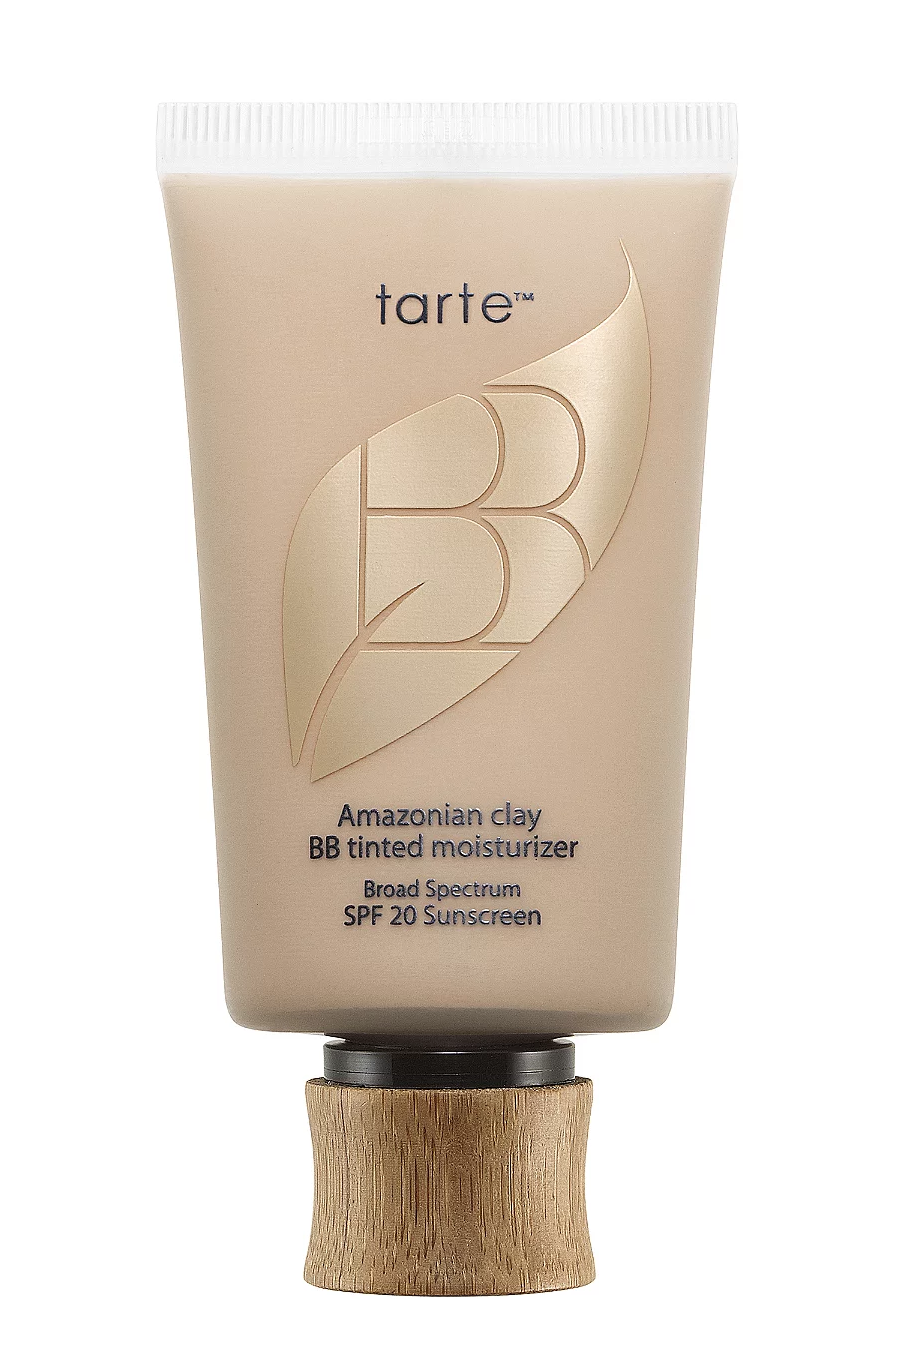 """<p><strong>Tarte</strong></p><p>ulta.com</p><p><strong>$36.00</strong></p><p><a href=""""https://go.redirectingat.com?id=74968X1596630&url=https%3A%2F%2Fwww.ulta.com%2Famazonian-clay-bb-tinted-moisturizer-broad-spectrum-spf-20%3FproductId%3DxlsImpprod2430045&sref=https%3A%2F%2Fwww.marieclaire.com%2Fbeauty%2Fmakeup%2Fg3427%2Fbest-bb-creams%2F"""" rel=""""nofollow noopener"""" target=""""_blank"""" data-ylk=""""slk:SHOP IT"""" class=""""link rapid-noclick-resp"""">SHOP IT</a></p><p>If finding the right shade for your skin is your biggest frustration (because honestly two options doesn't really cut it), do some tone-matching with the 10 different tints of this mineral-based moisturizer. P.S. It has a host of anti-inflammatory ingredients for super-reactive skin. </p>"""